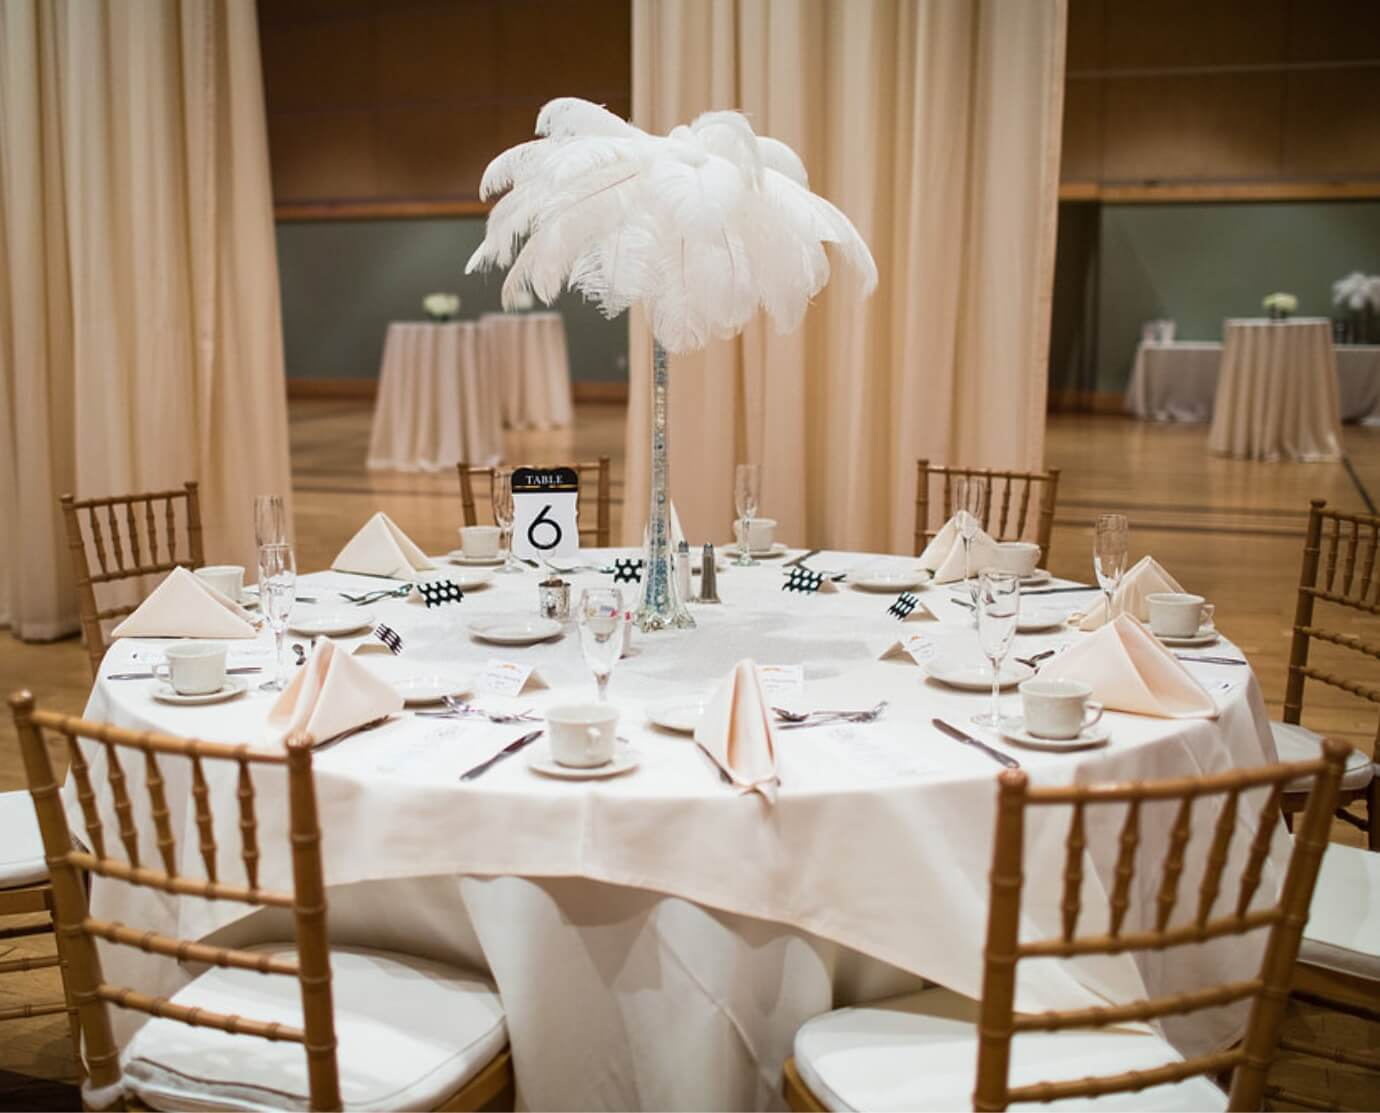 Corporate events at The Circuit Center and Ballroom